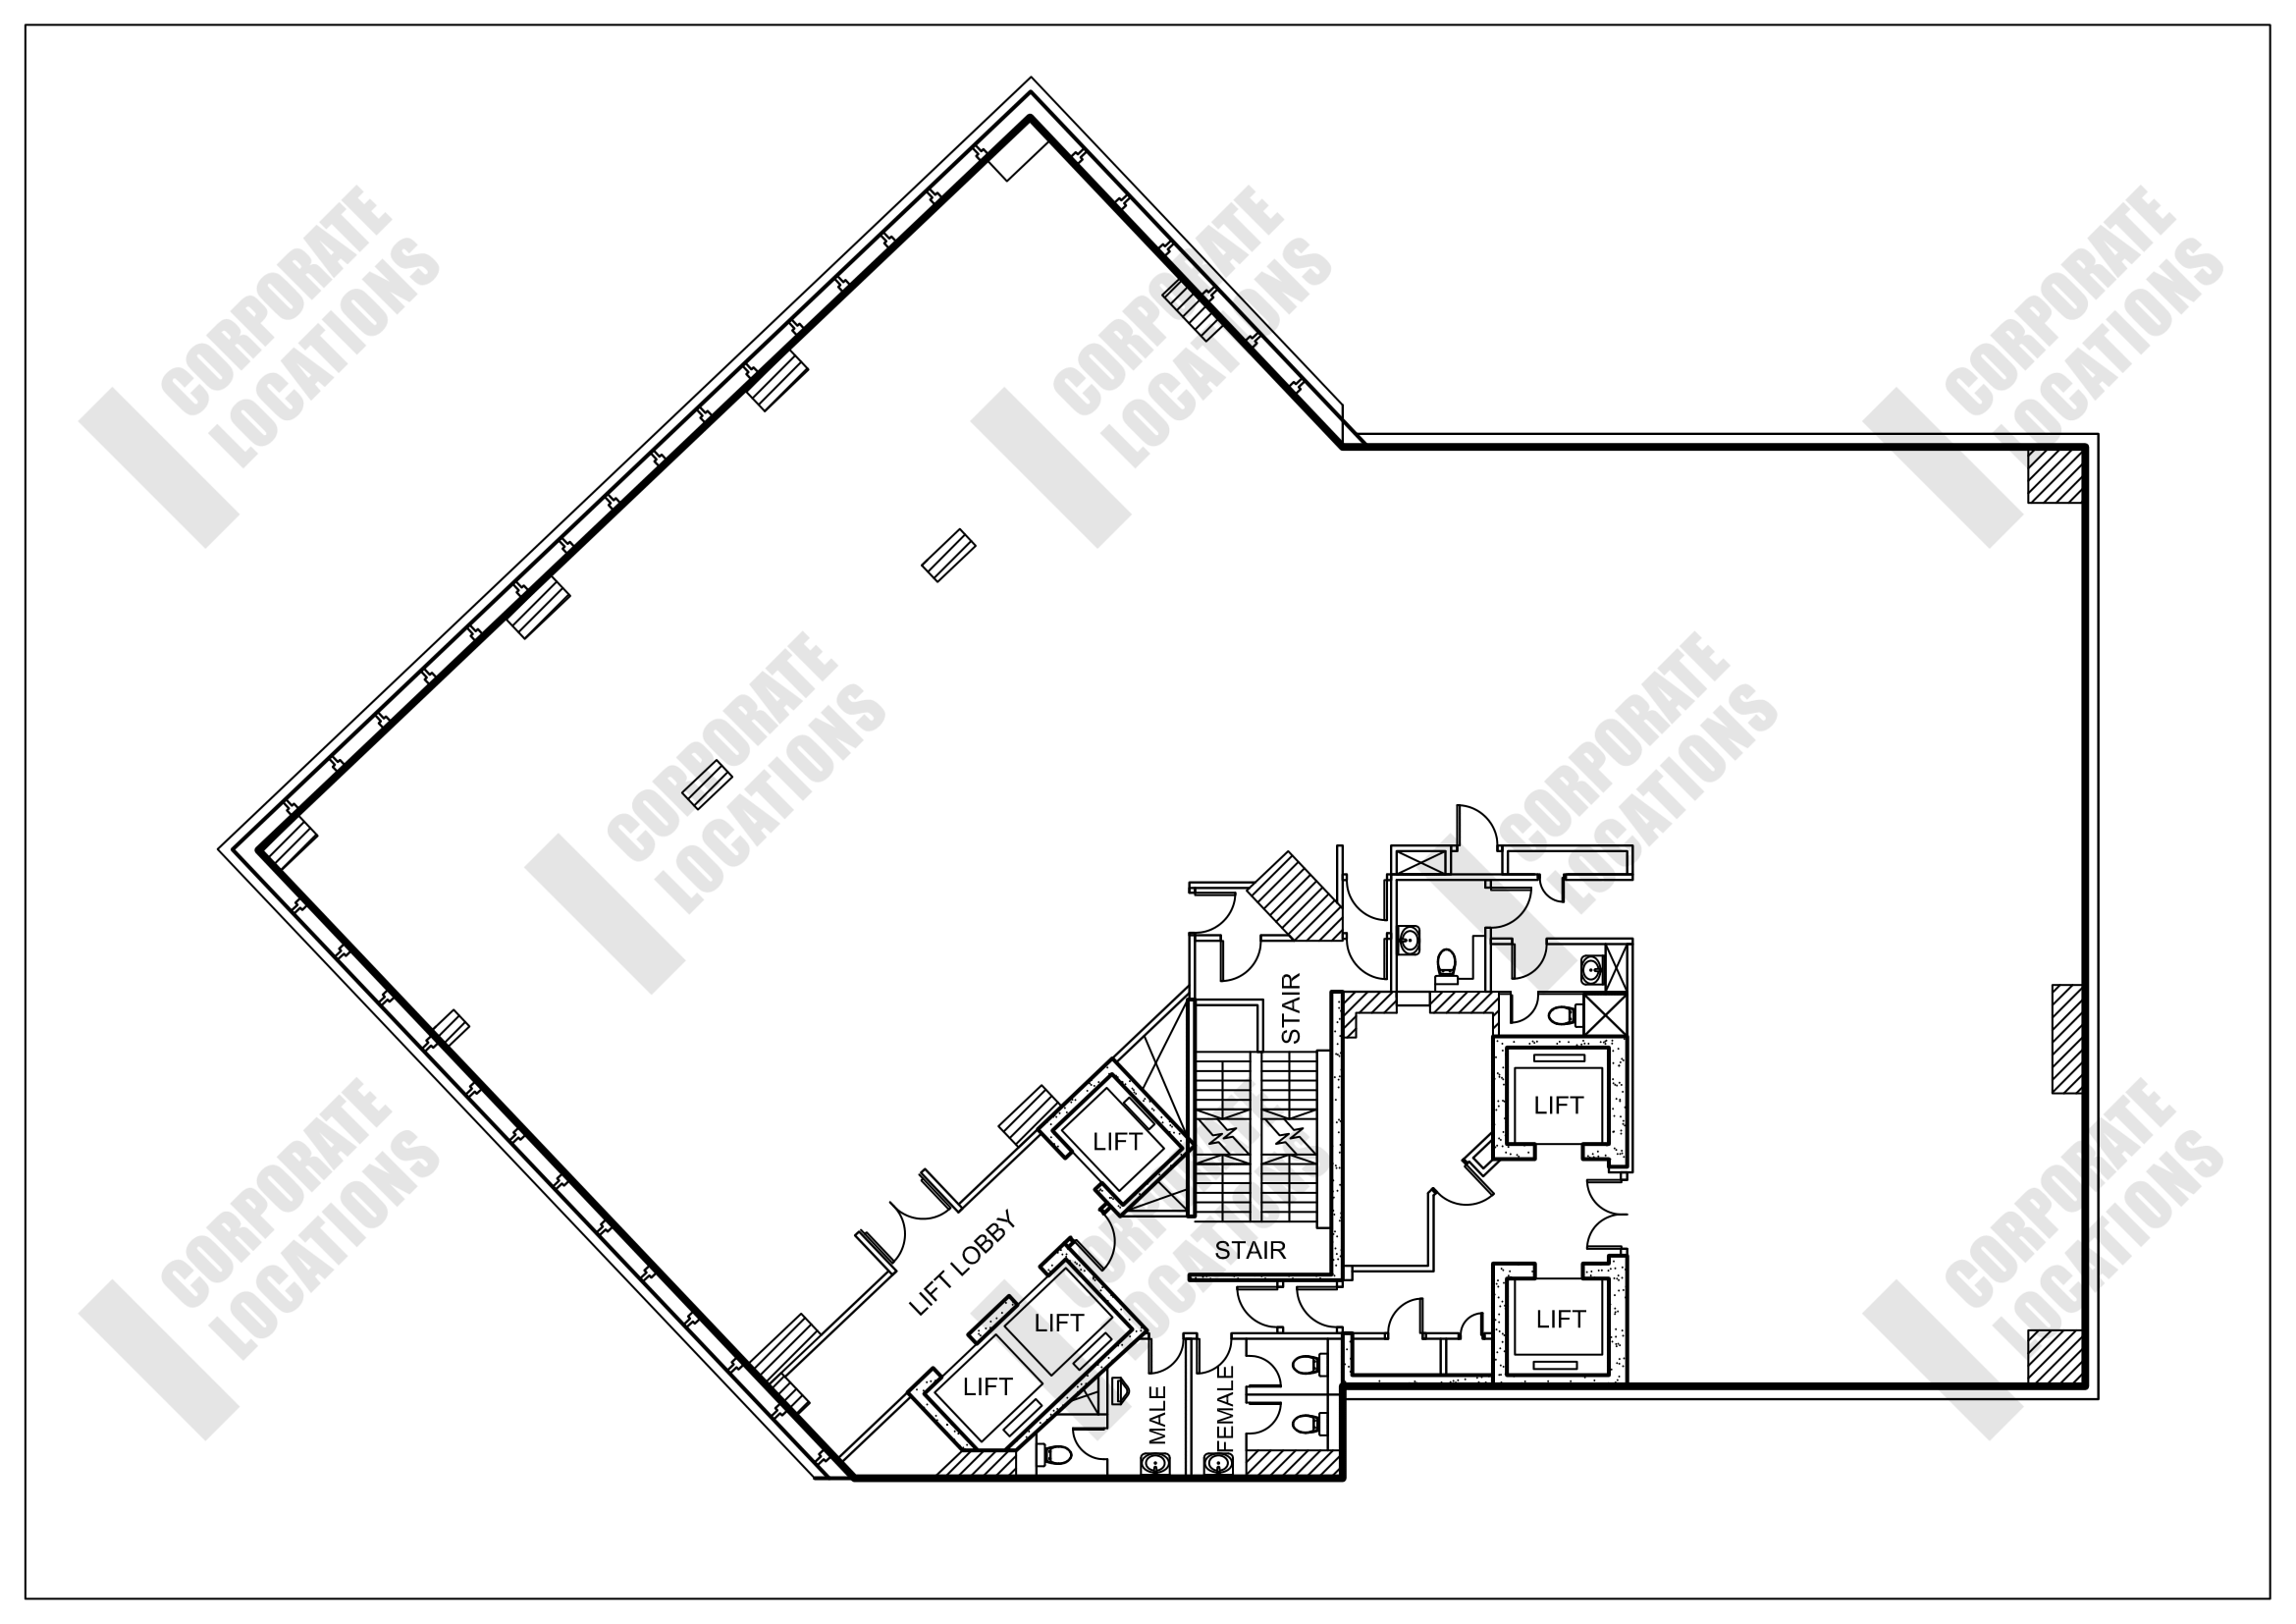 Floorplan 101 King's Road